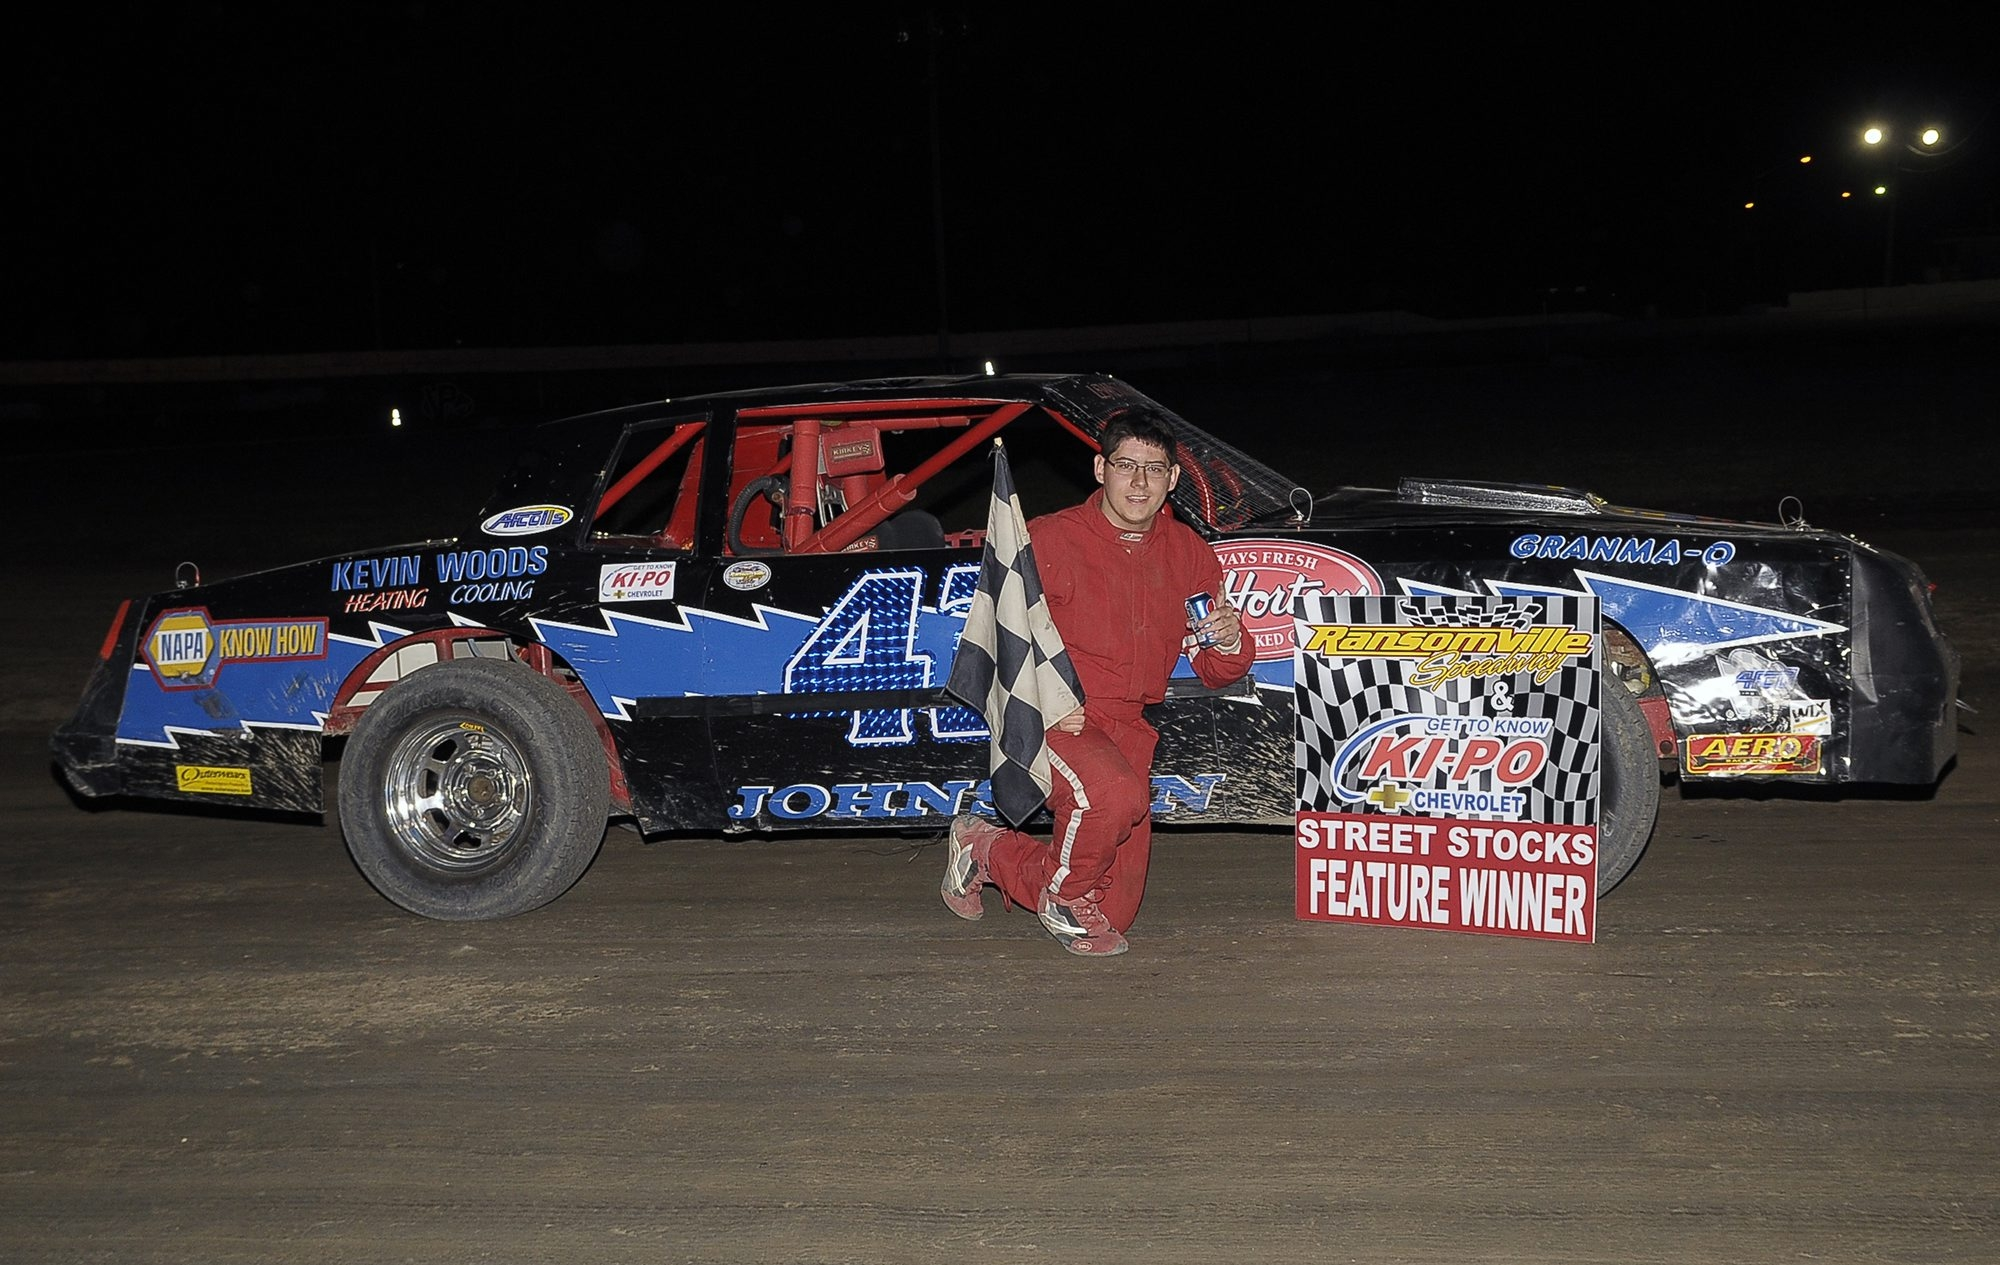 Driver Jesse Johnston recorded his first career Street Stock win at Ransomville Speedway in June.